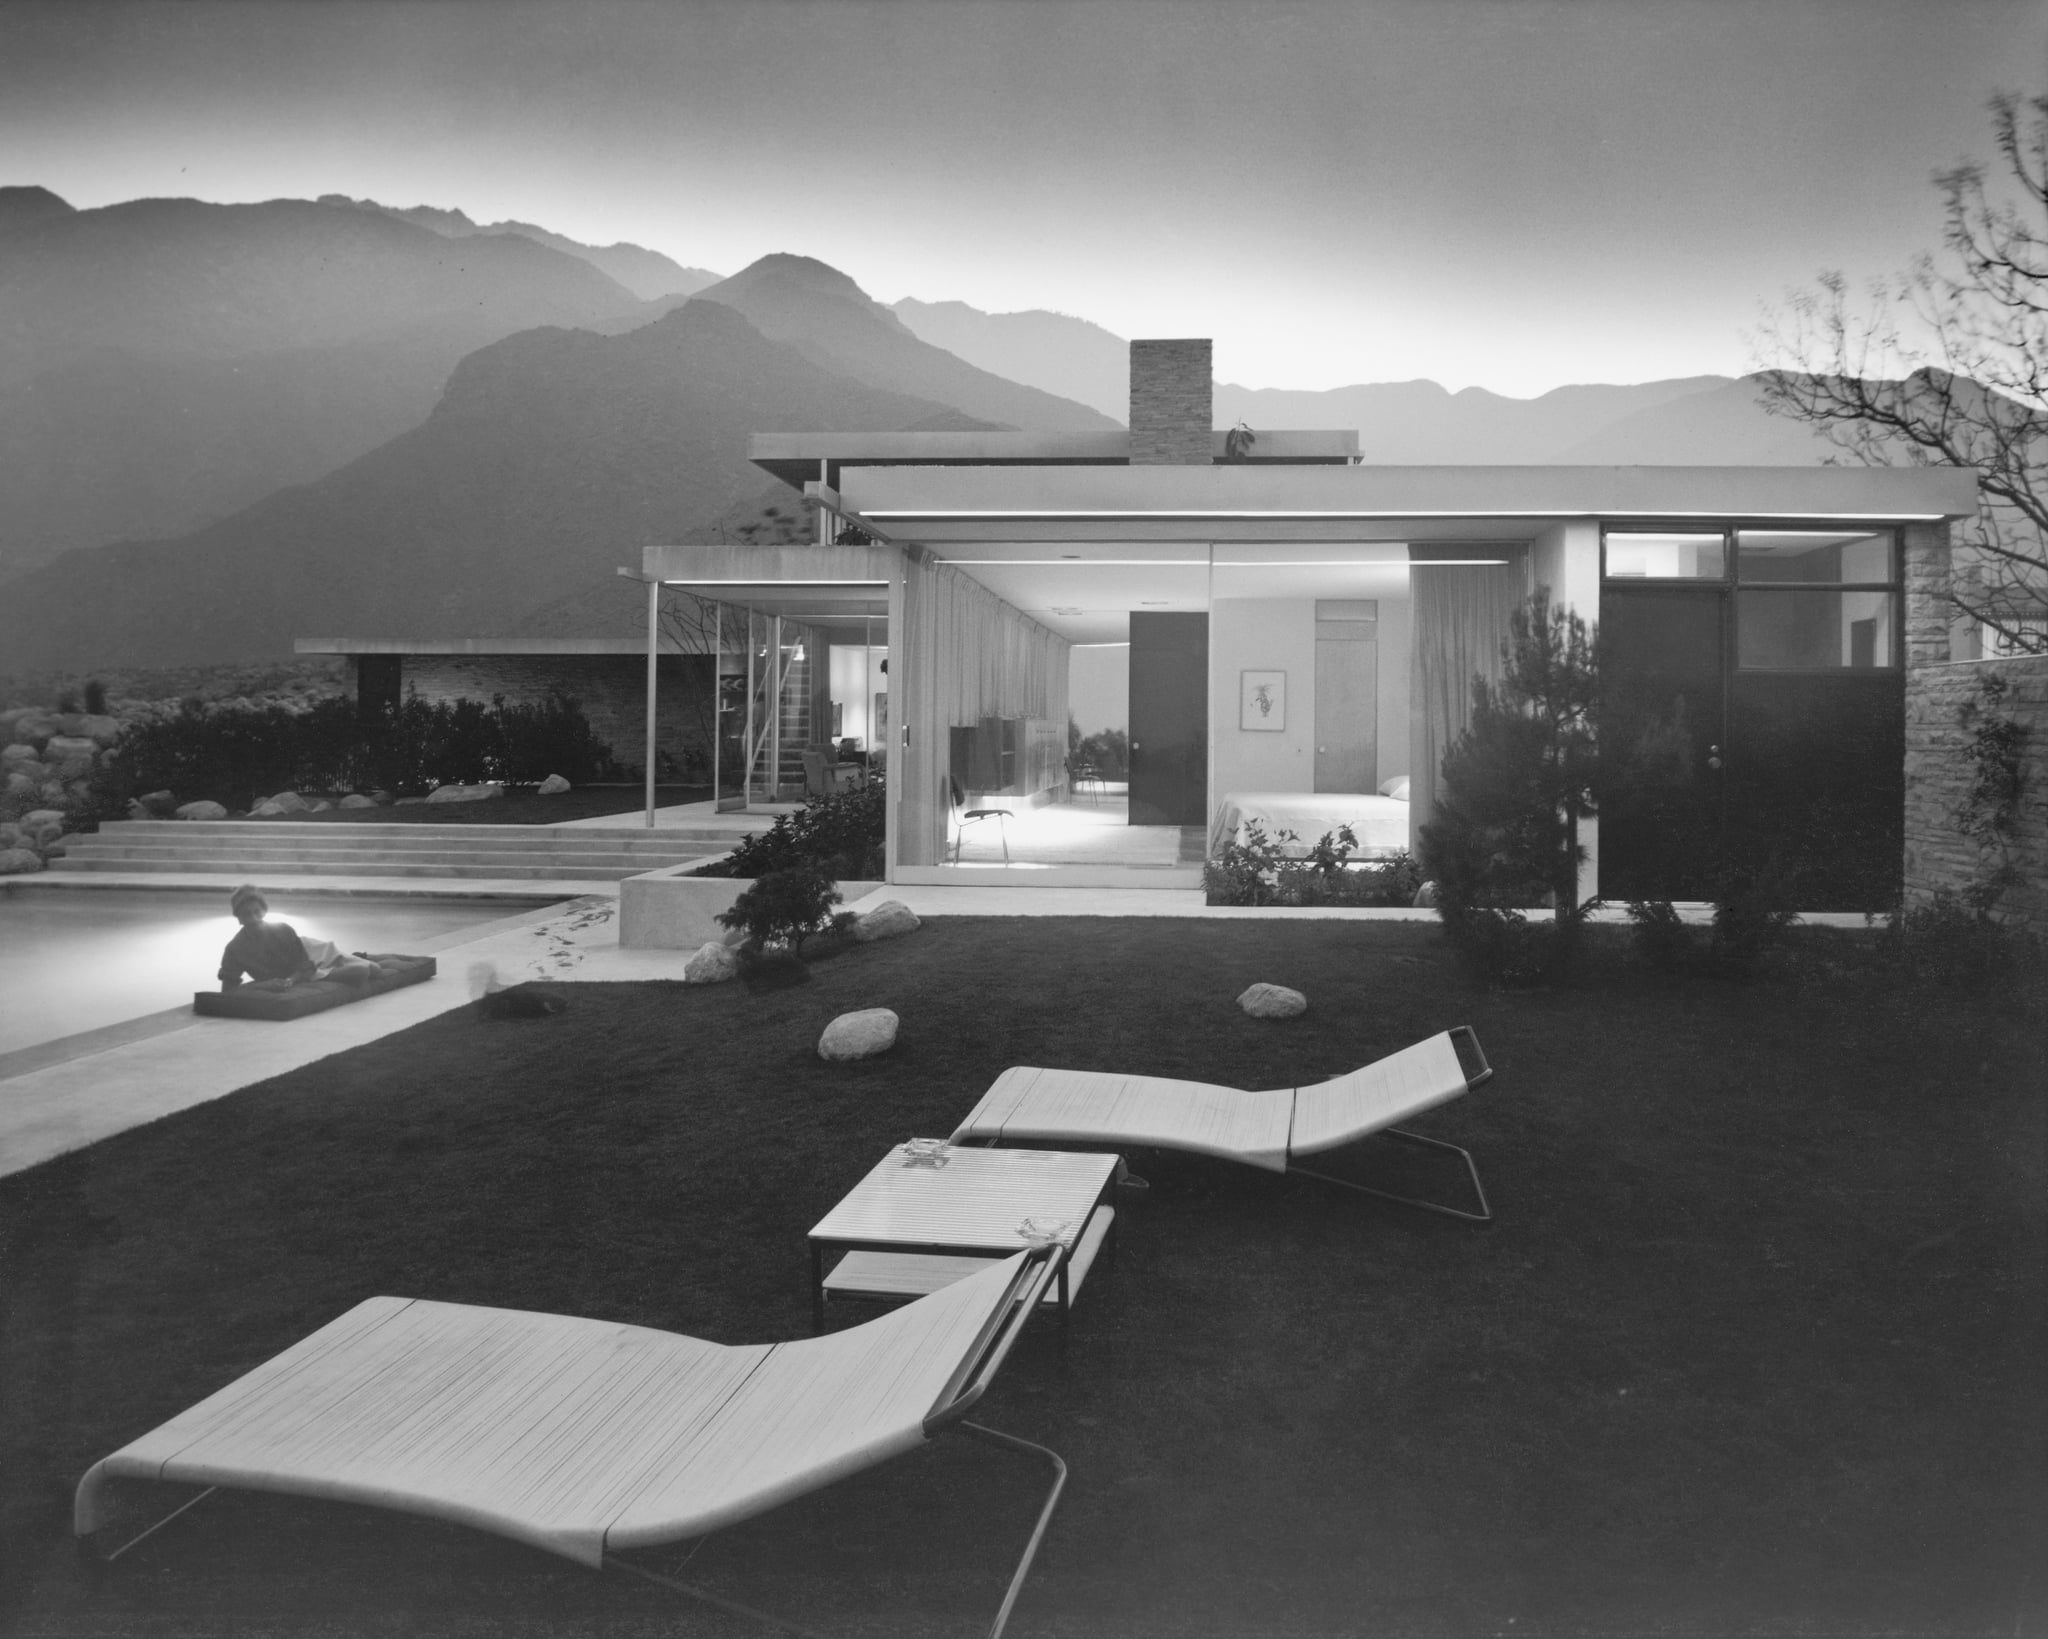 Iconic modern architecture by Richard Neutra, photographed by Julius Shulman in Palm Springs